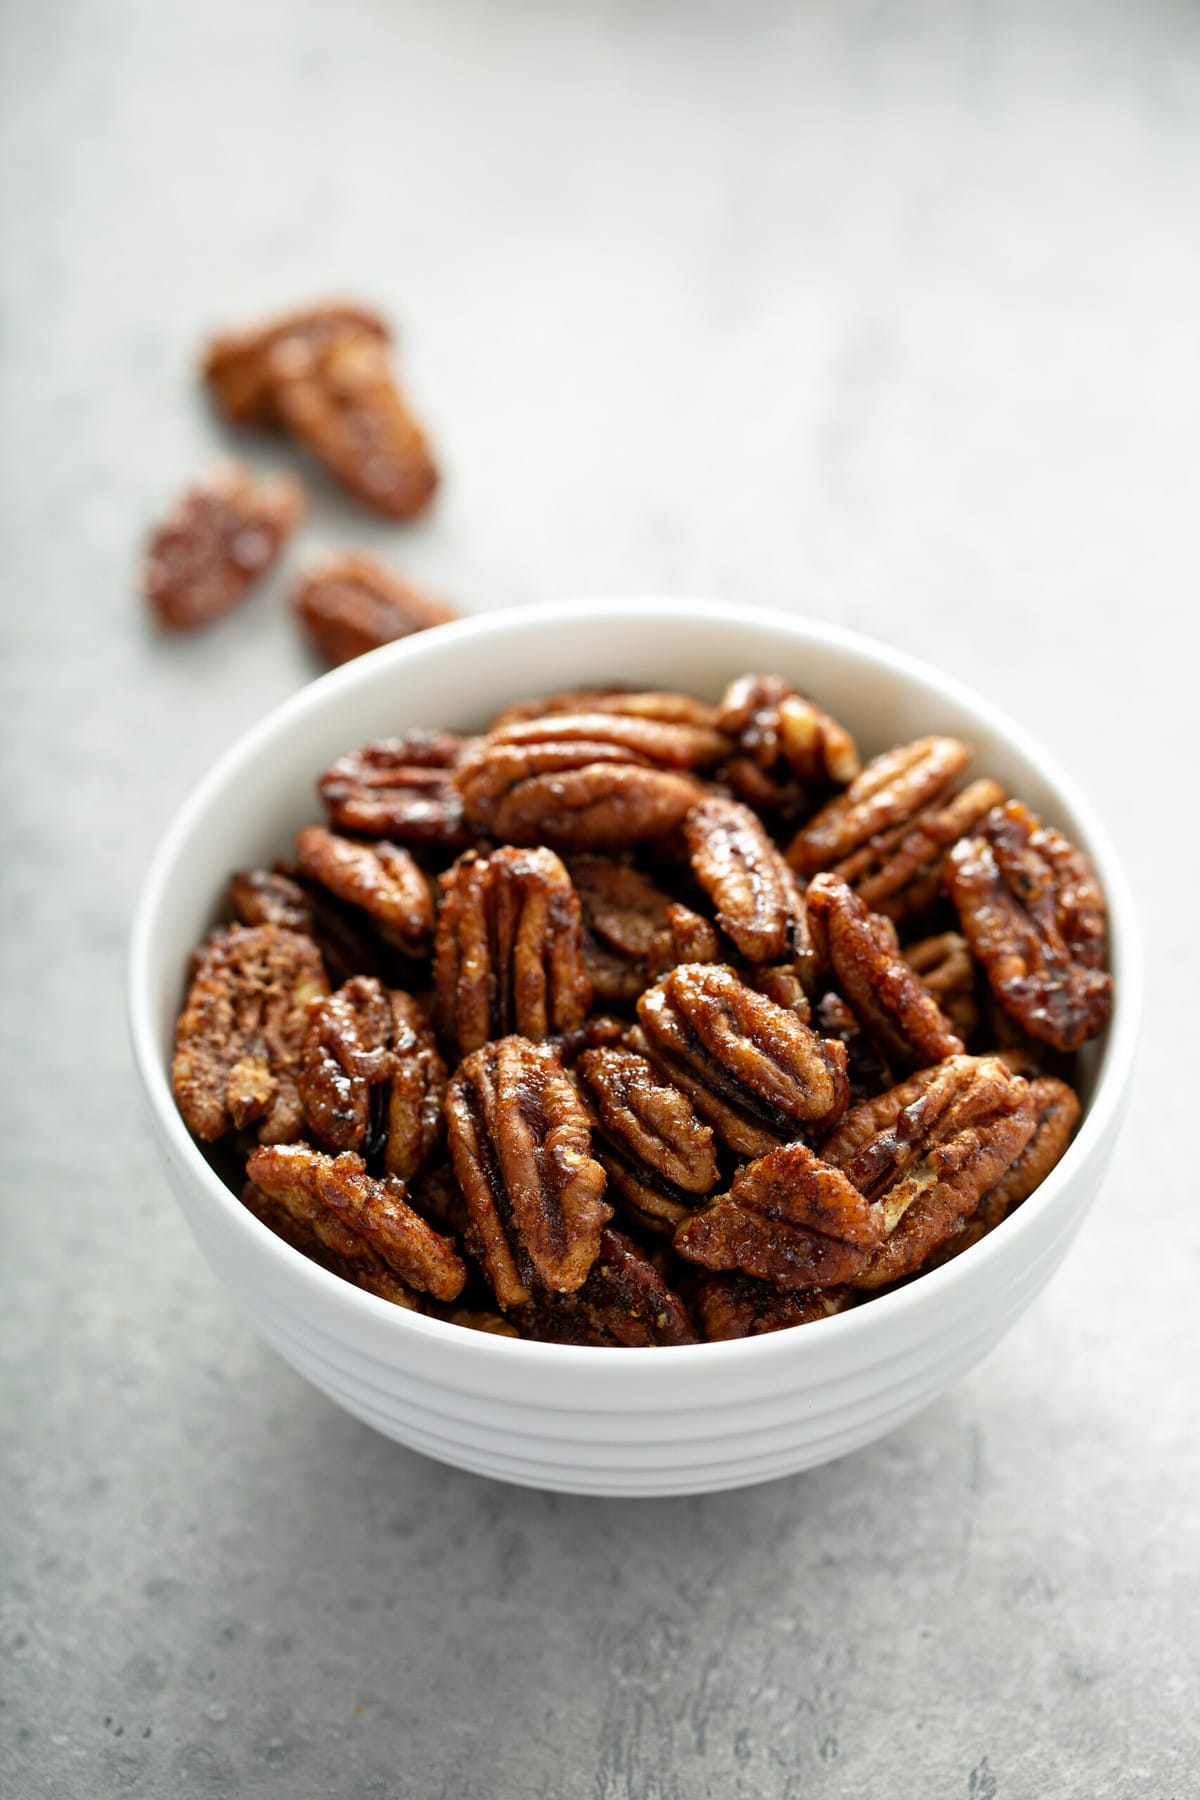 candied pecans in a white bowl on a concrete surface